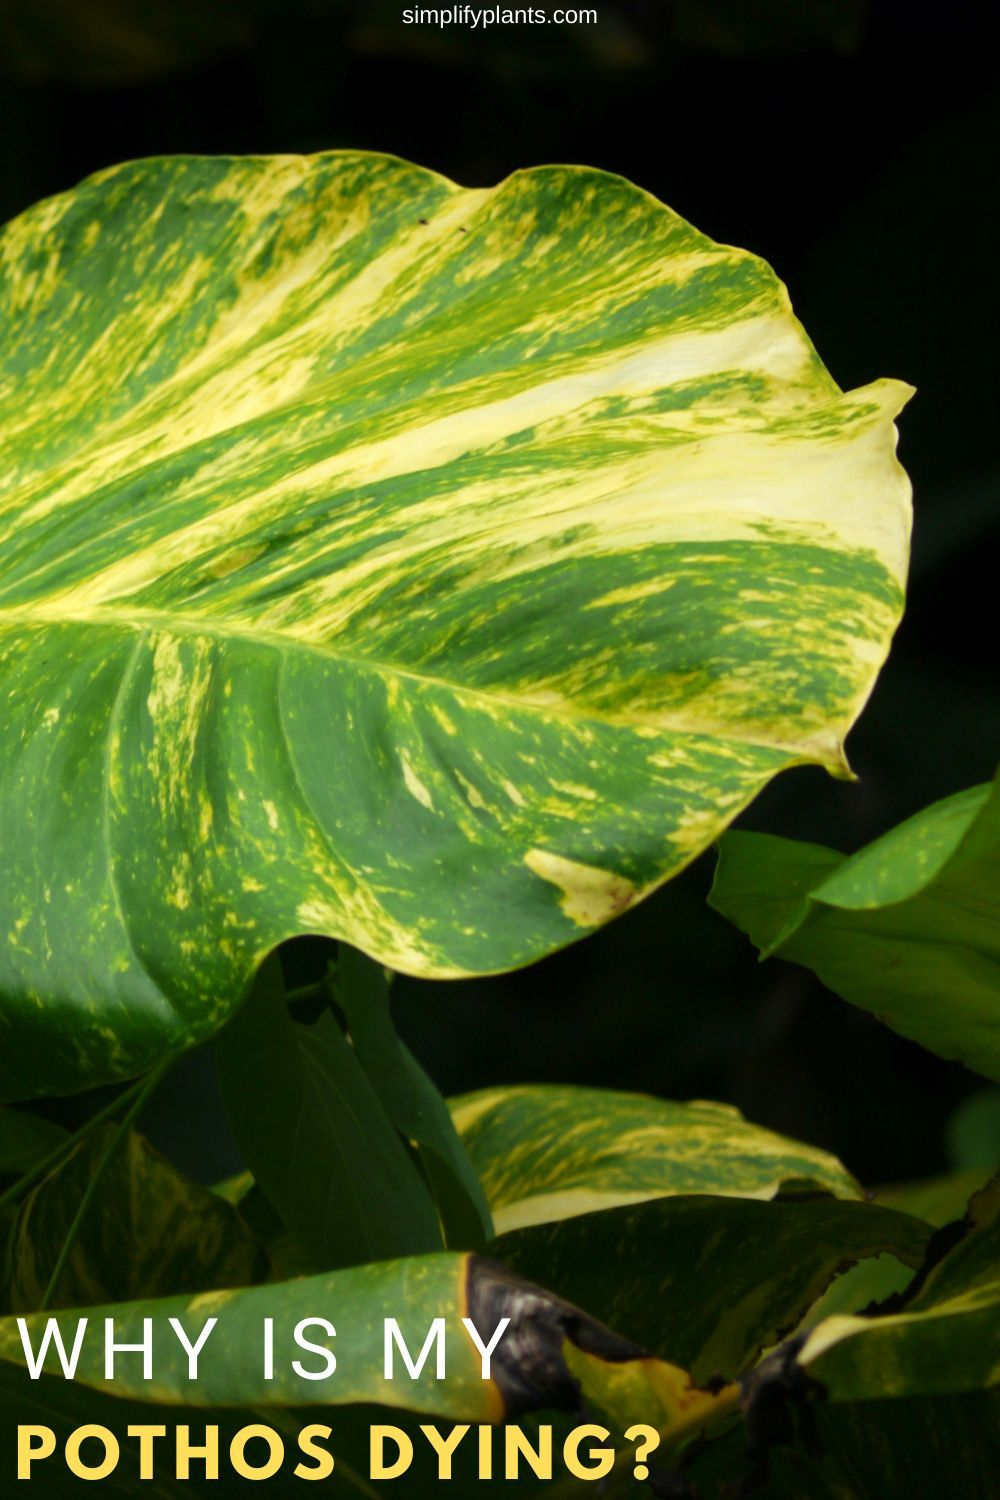 Pothos also known as devil's ivy, is a hardy plant that won't die on you quickly. Though the pothos doesn't require much of your care and can thrive in the most challenging situations, you can never neglect a few signs that the plant gives you. So, let us learn about why your pothos may be dying and what we can do about it.  #pothos #lowmaintenanceplants #beginnerplants #devilsivy #devilsivytips #pothosdying